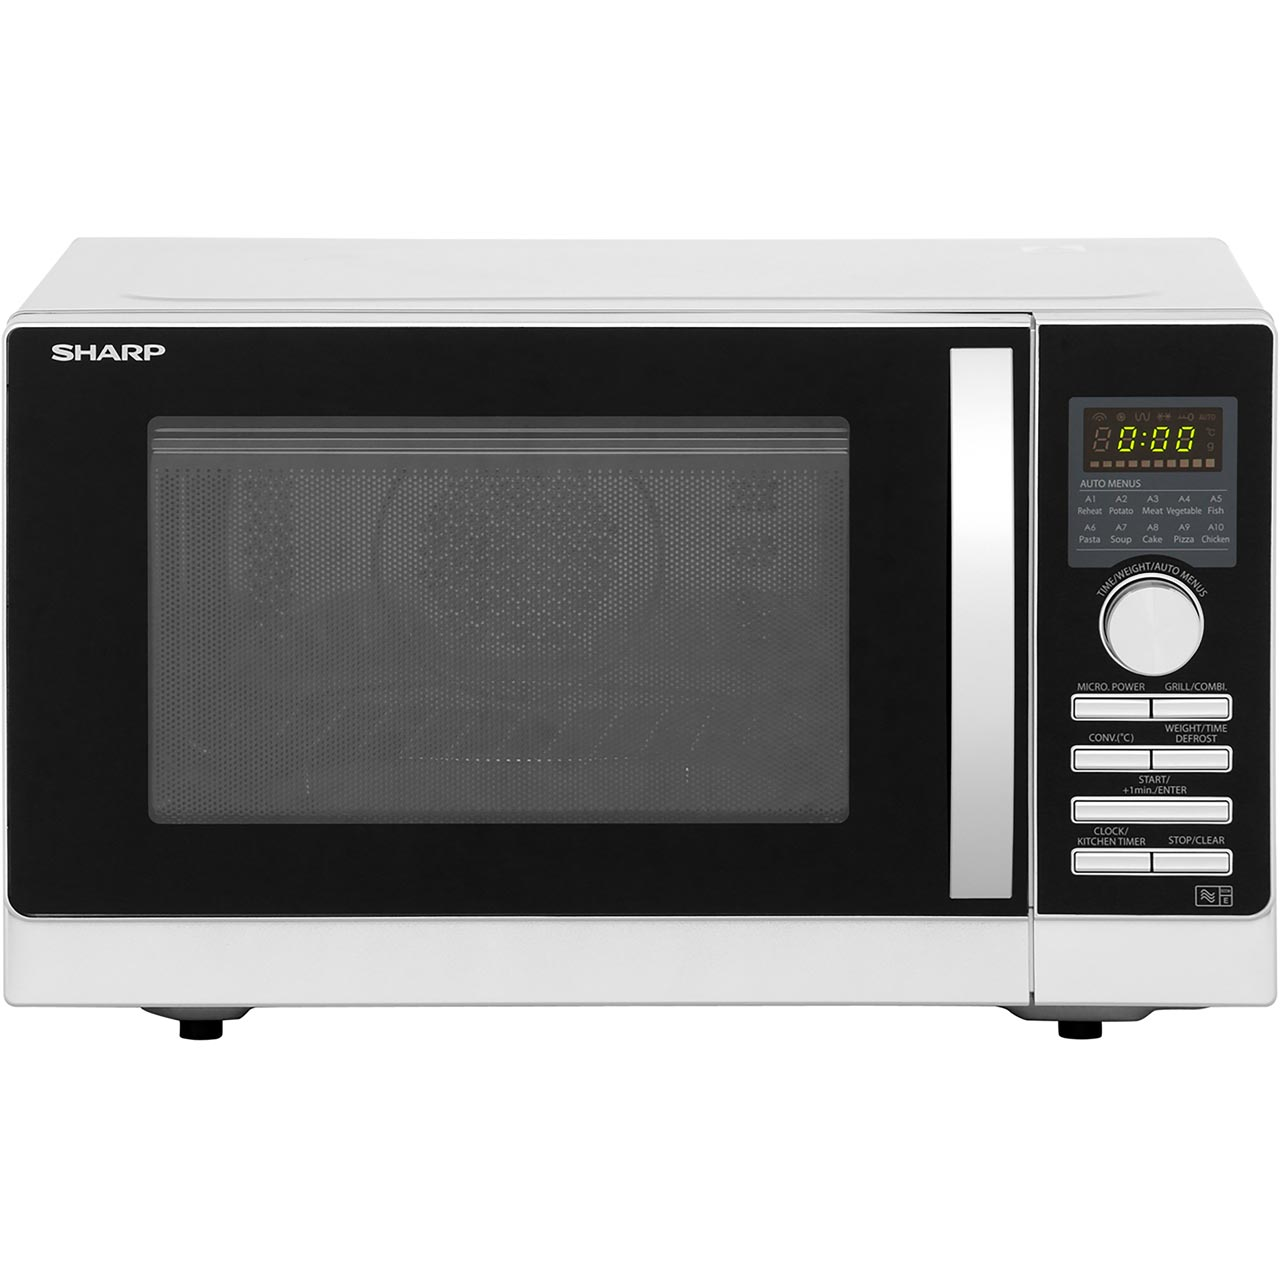 Sharp Microwave Repair Parts Bestmicrowave Diagram List For Model R1m53 Sharpparts Microwaveparts Select From 306 Models R843slm Si Oven 25 Litre Ao